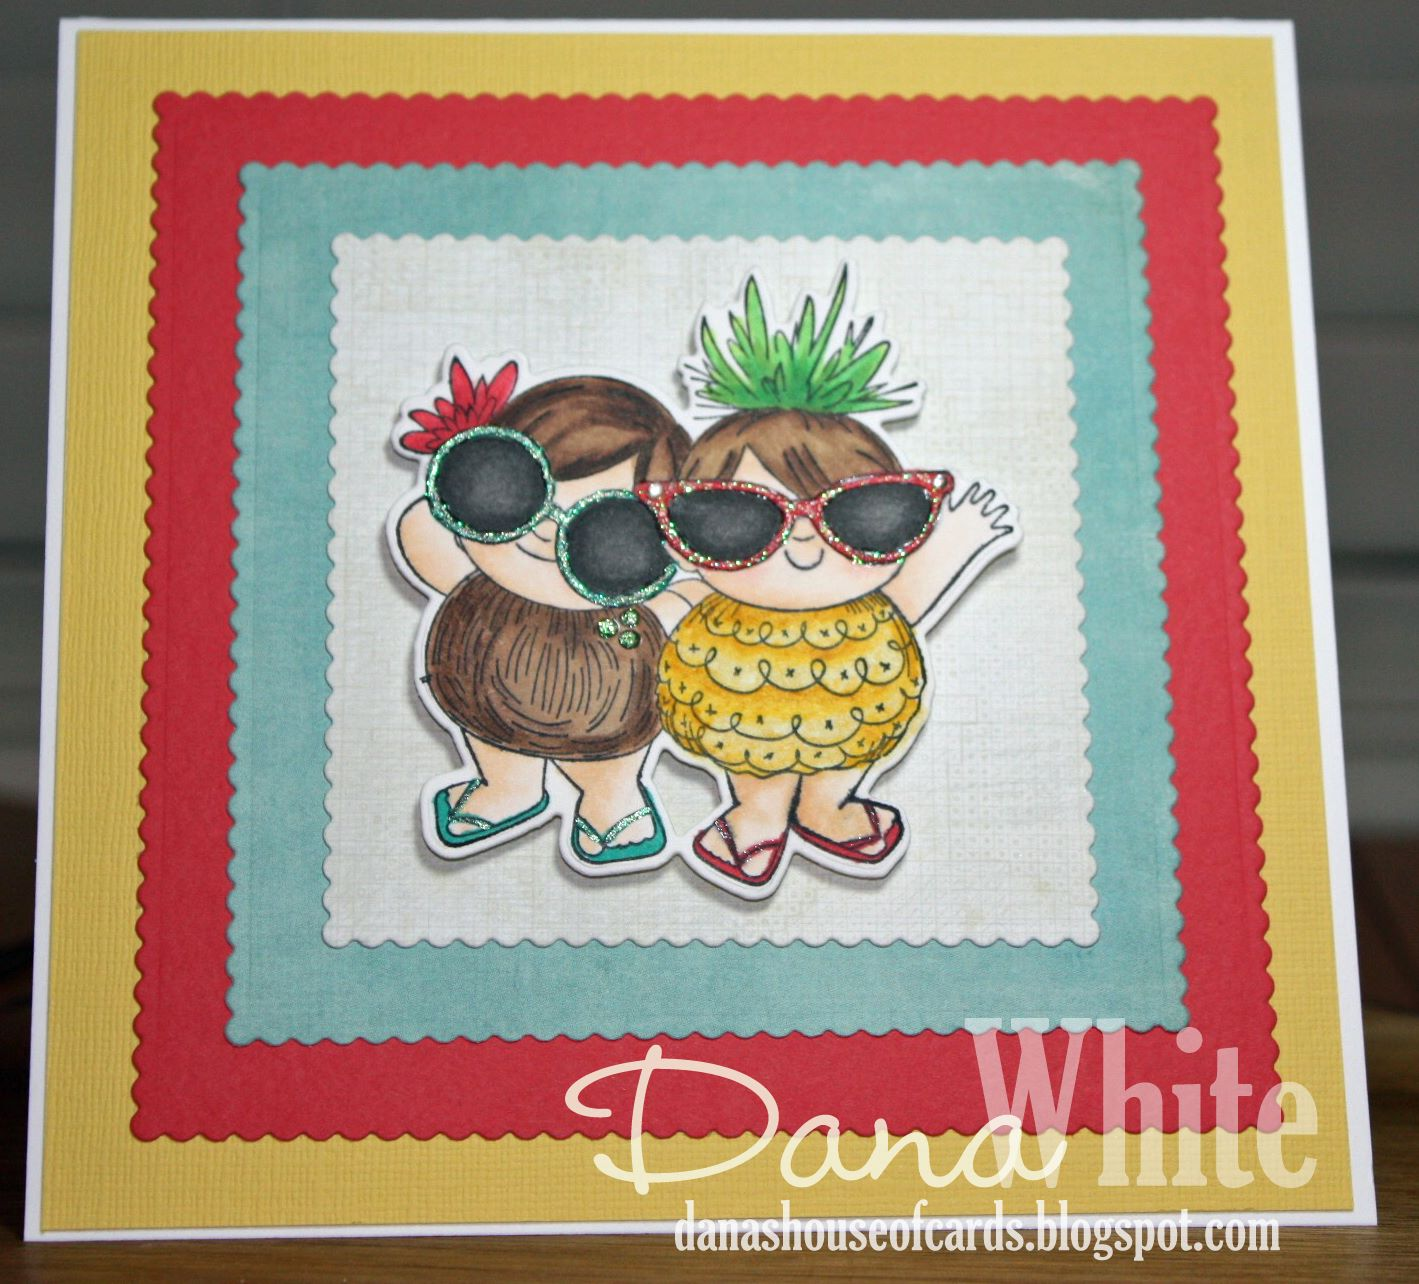 Bellarific Friday challenge with STAMPING BELLA- Card made by Dana White  using our TROPICAL SQUIDGIES rubber stamp